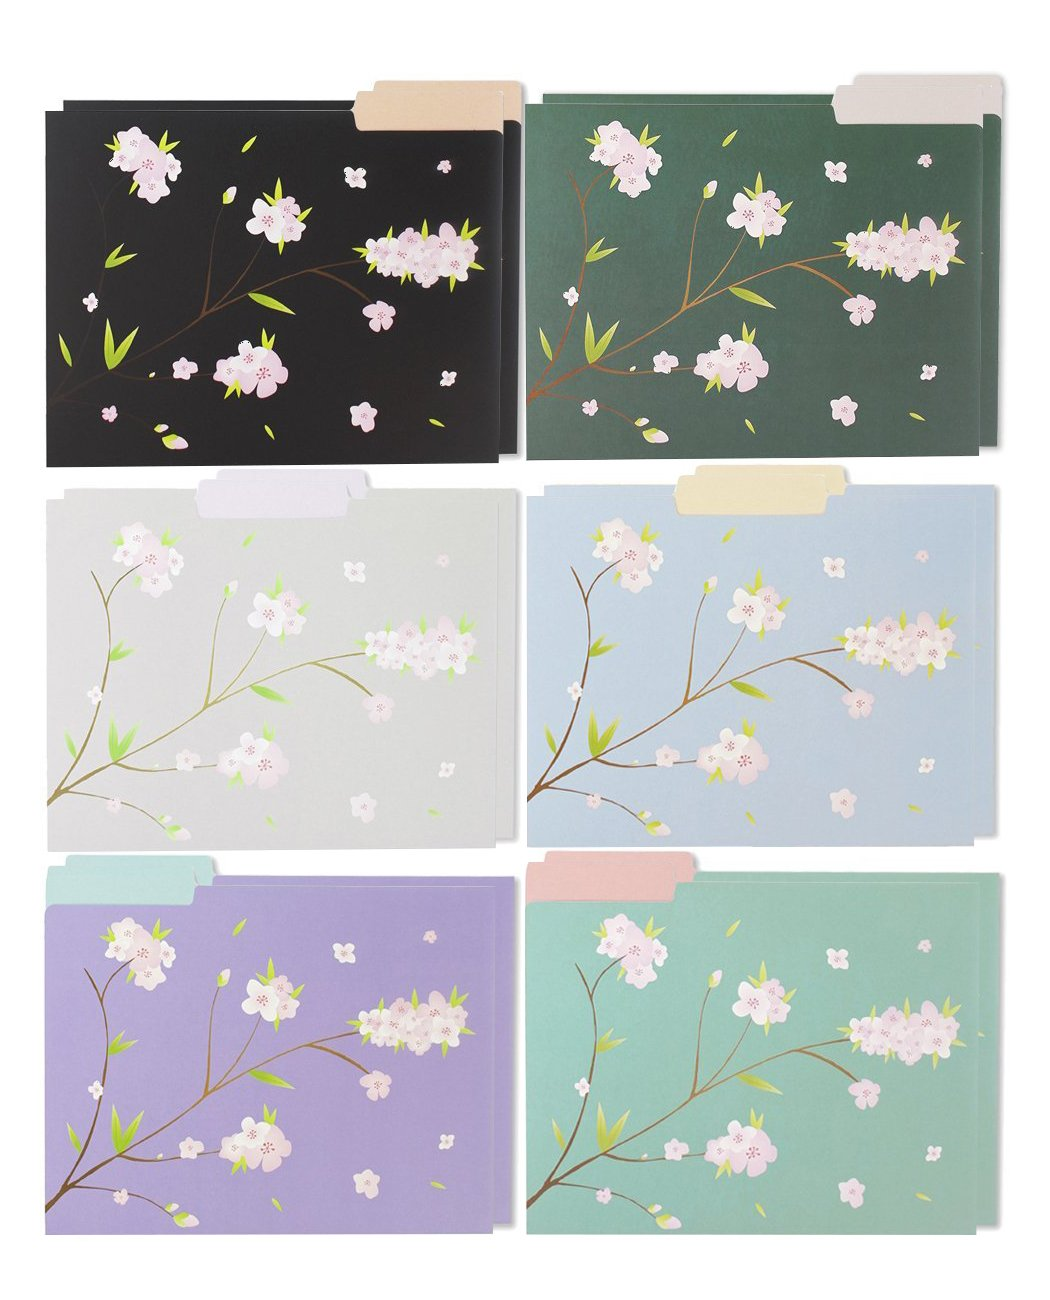 12 Pack Decorative Assorted Designer File Folder Set - 6 Different Japanese Cherry Blossom Designs - Letter Size with ½ Inch Cut Top Memory Tab - File Filing Organizers - 9.5 x 11.5 Inches